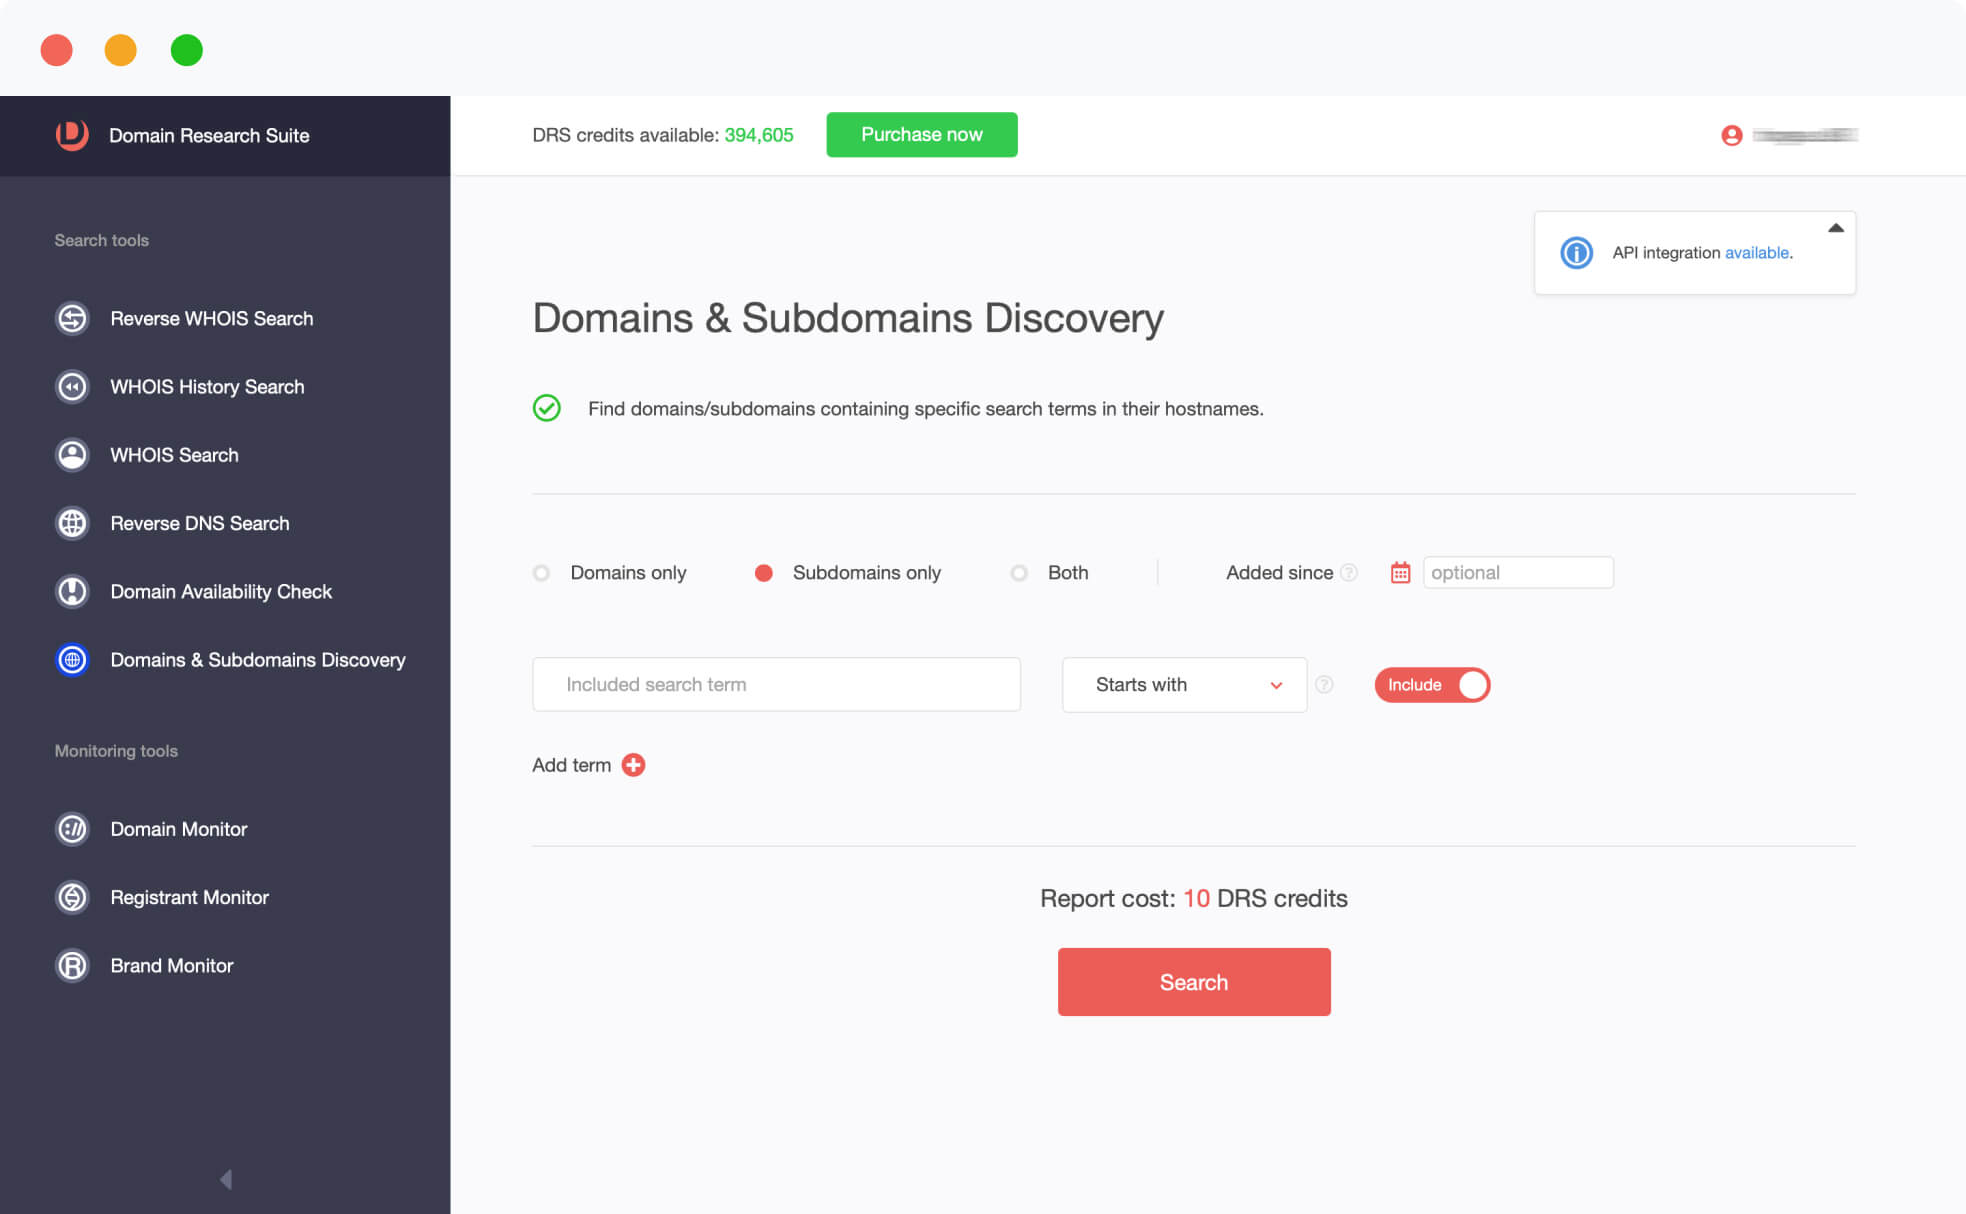 Domains & Subdomains Discovery